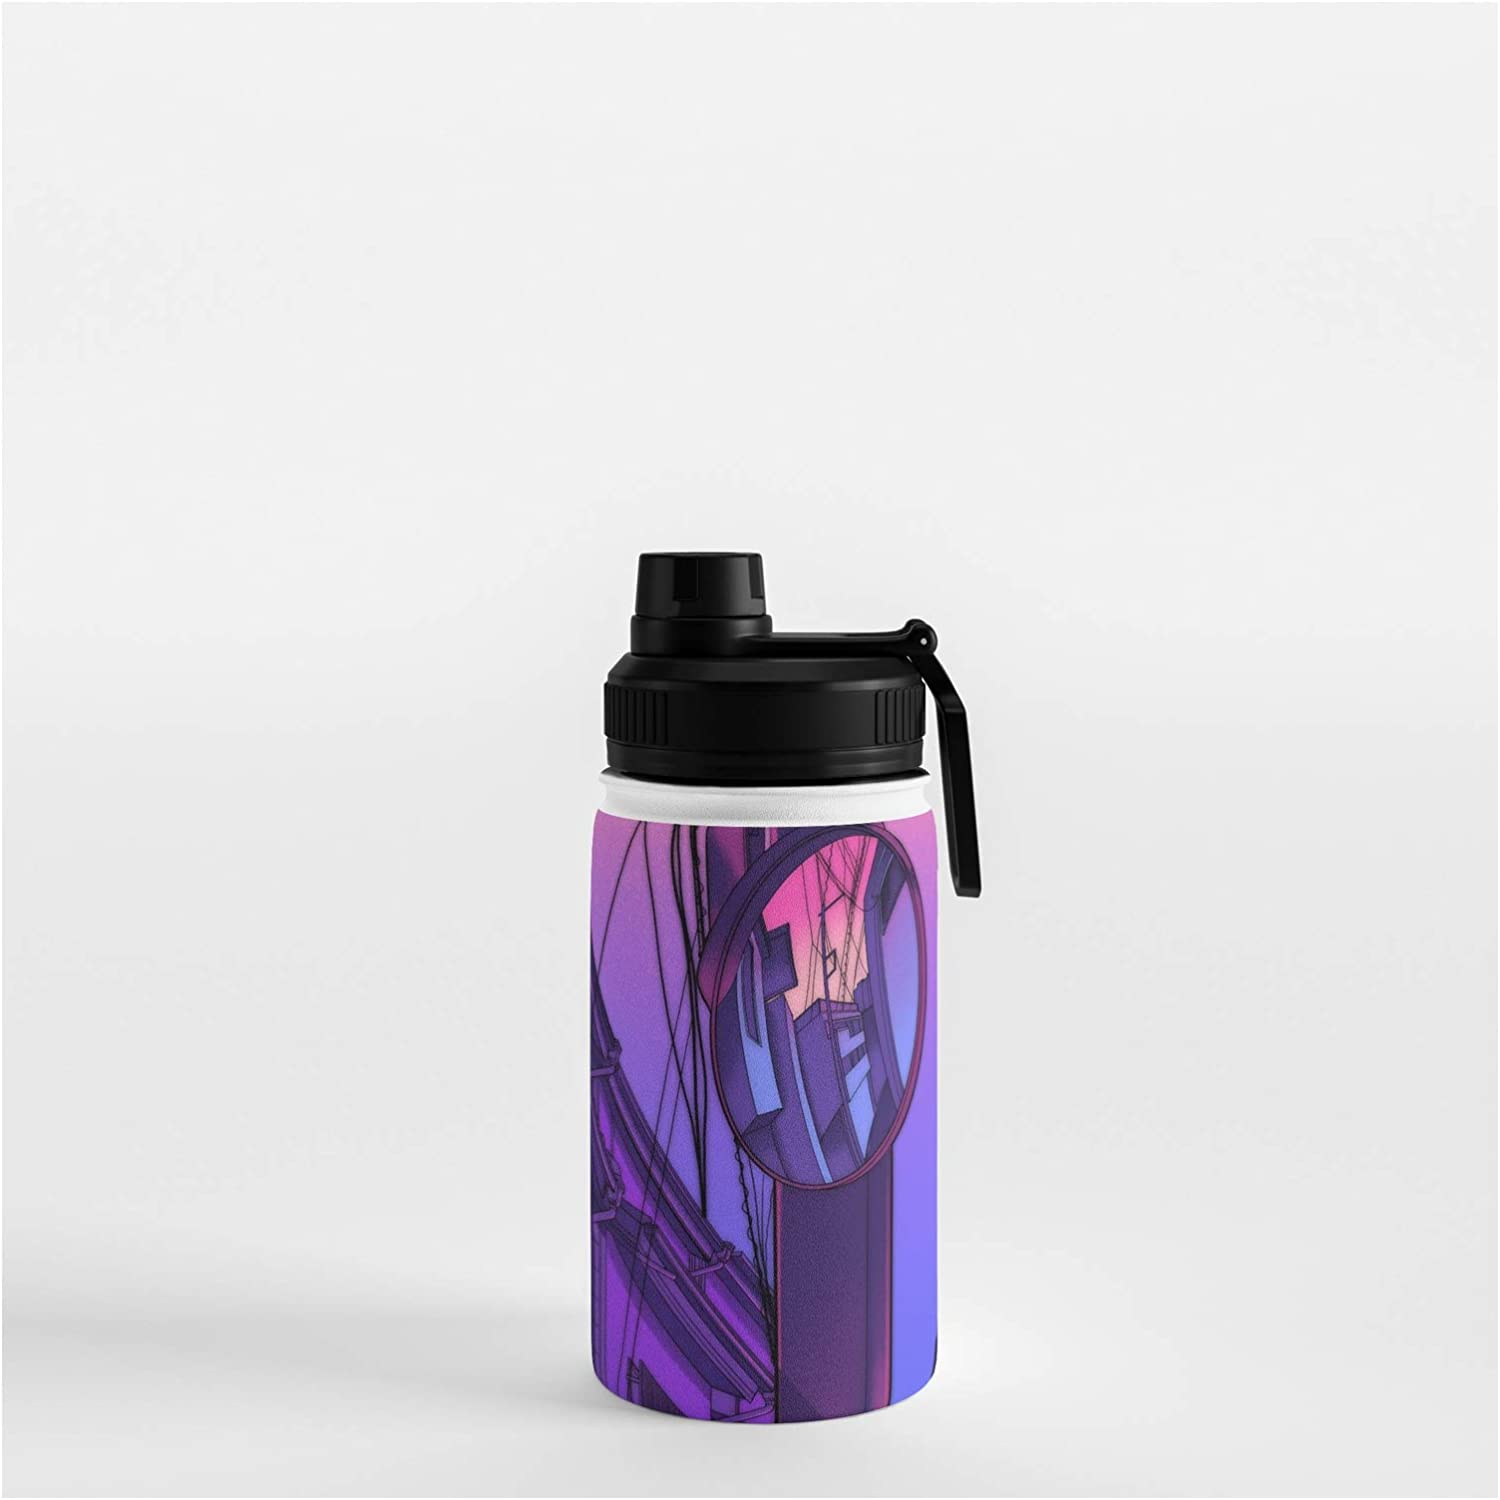 Society6 Tokyo Dawn by Surudenise on Max Max 86% OFF 81% OFF Water 356 mL oz - 12 Bottle